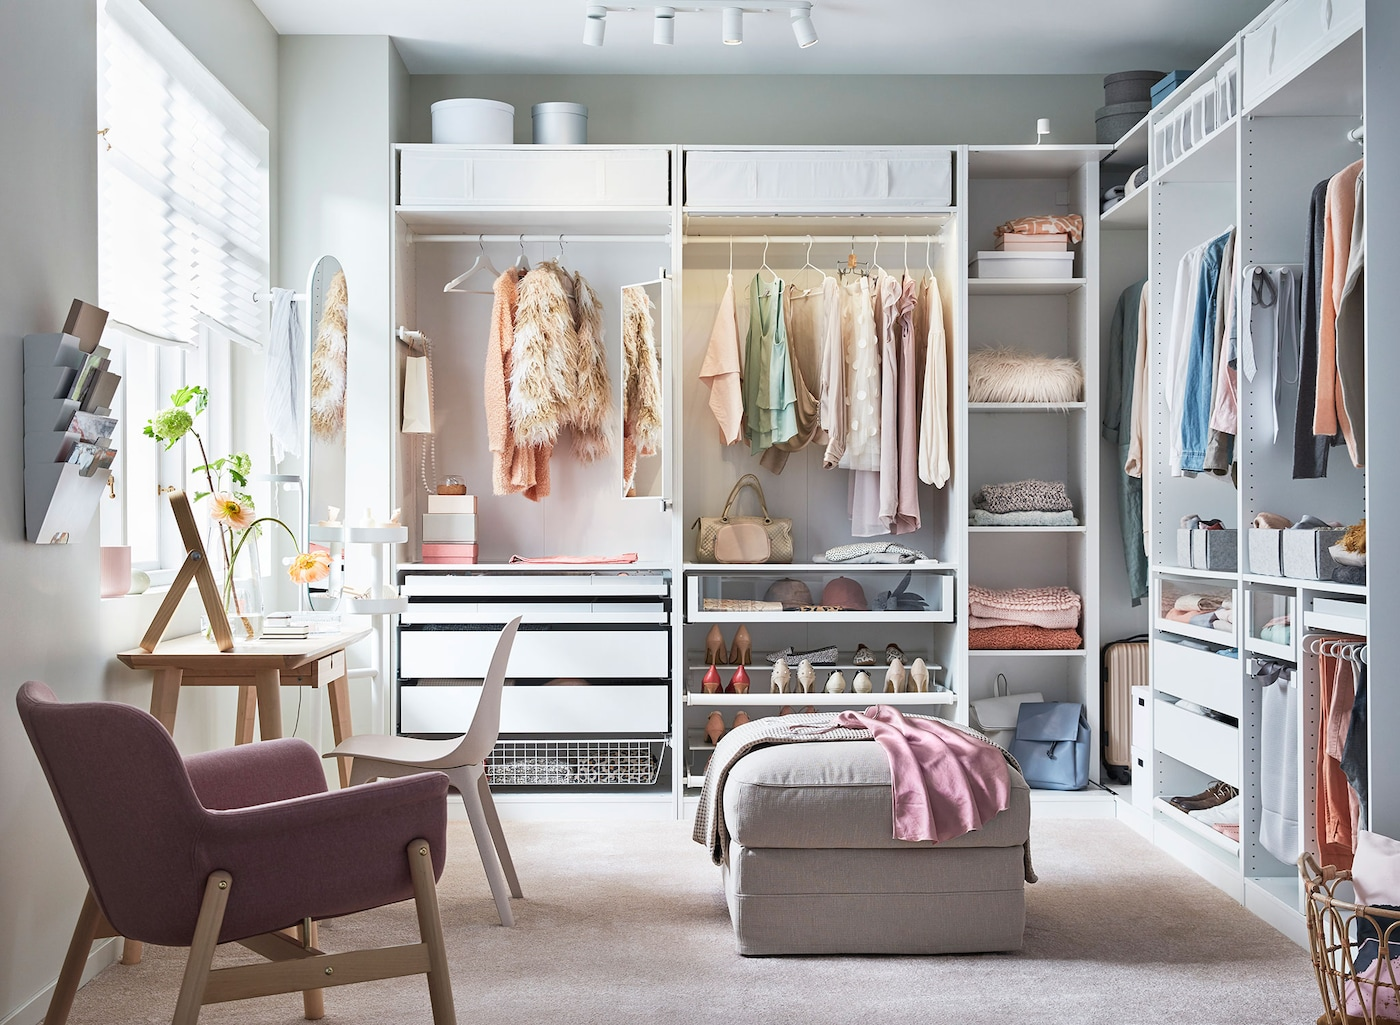 A large walk in closet with white cabinets featuring drawers, shelves and clothes hanging.